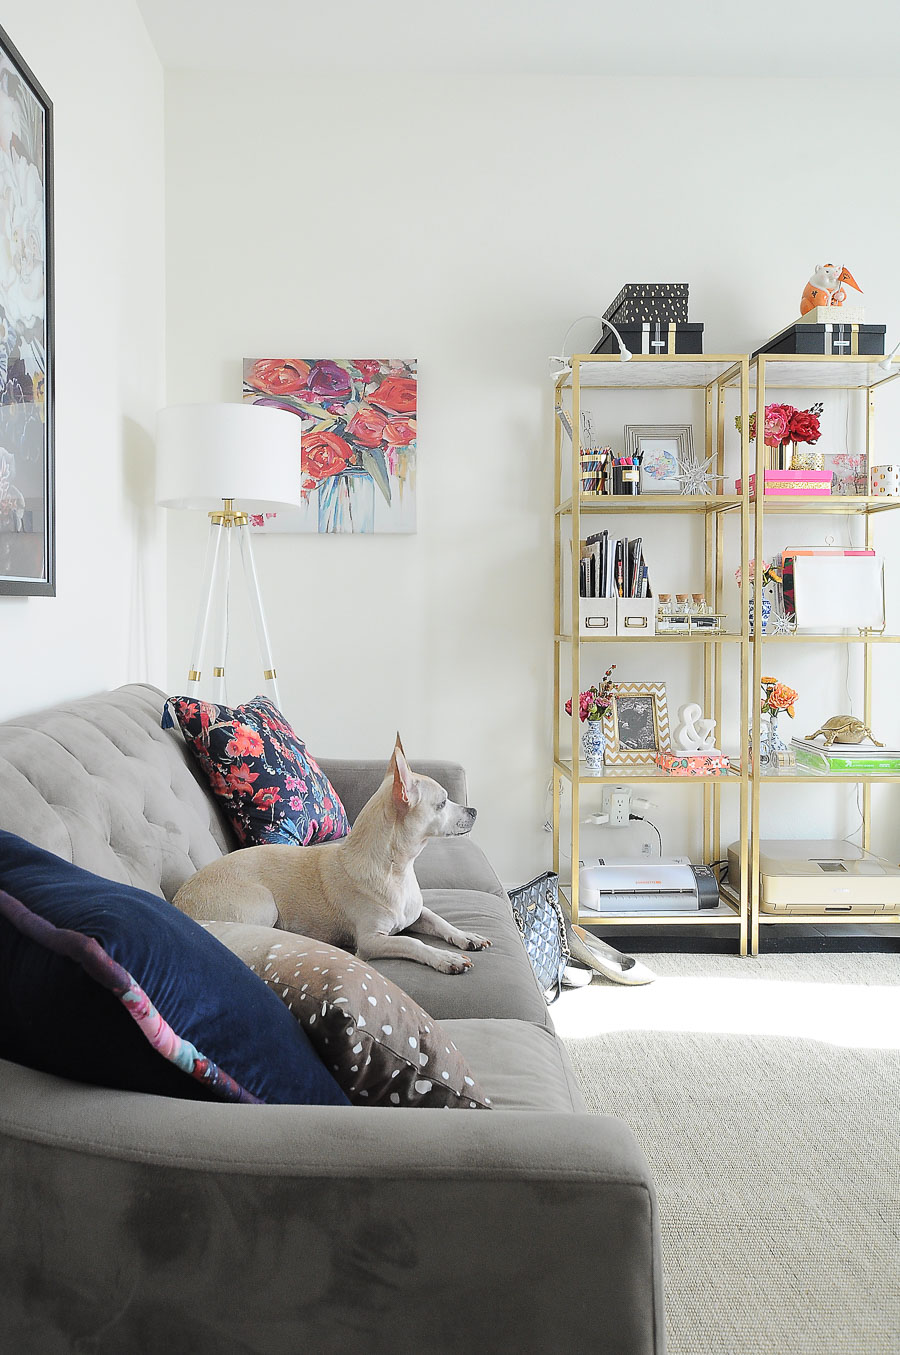 A small sofa serves as seating in this bright white and gold home office makeover.